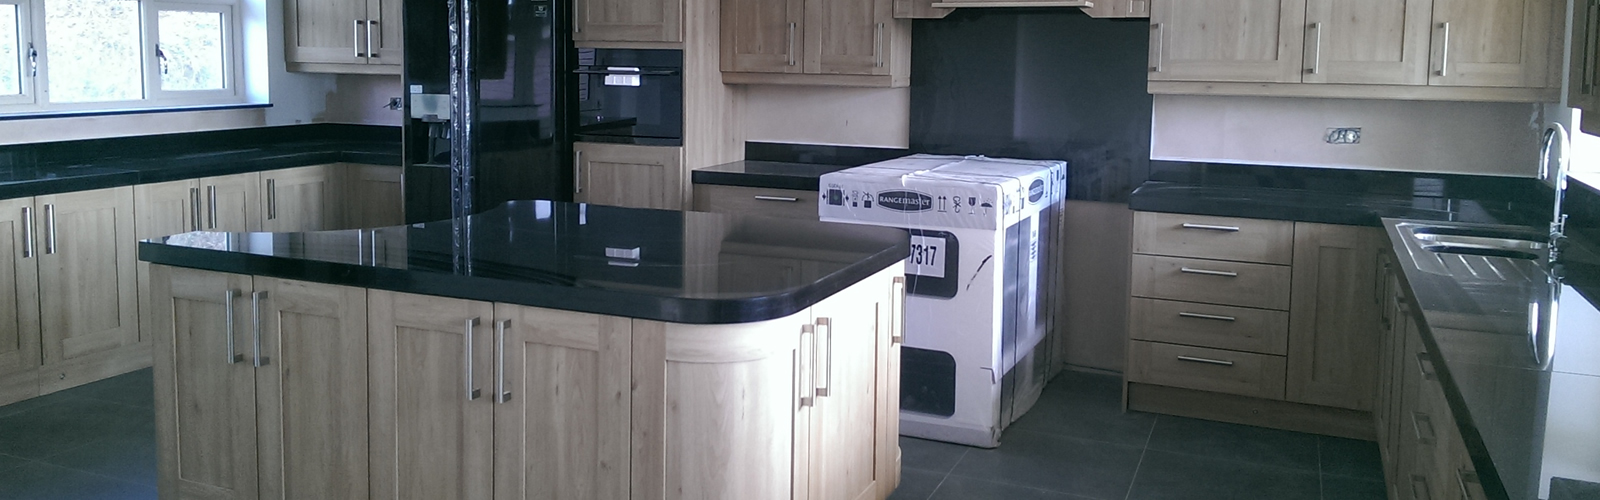 Kitchen Fitters Castleford, Fitted Kitchens Castleford